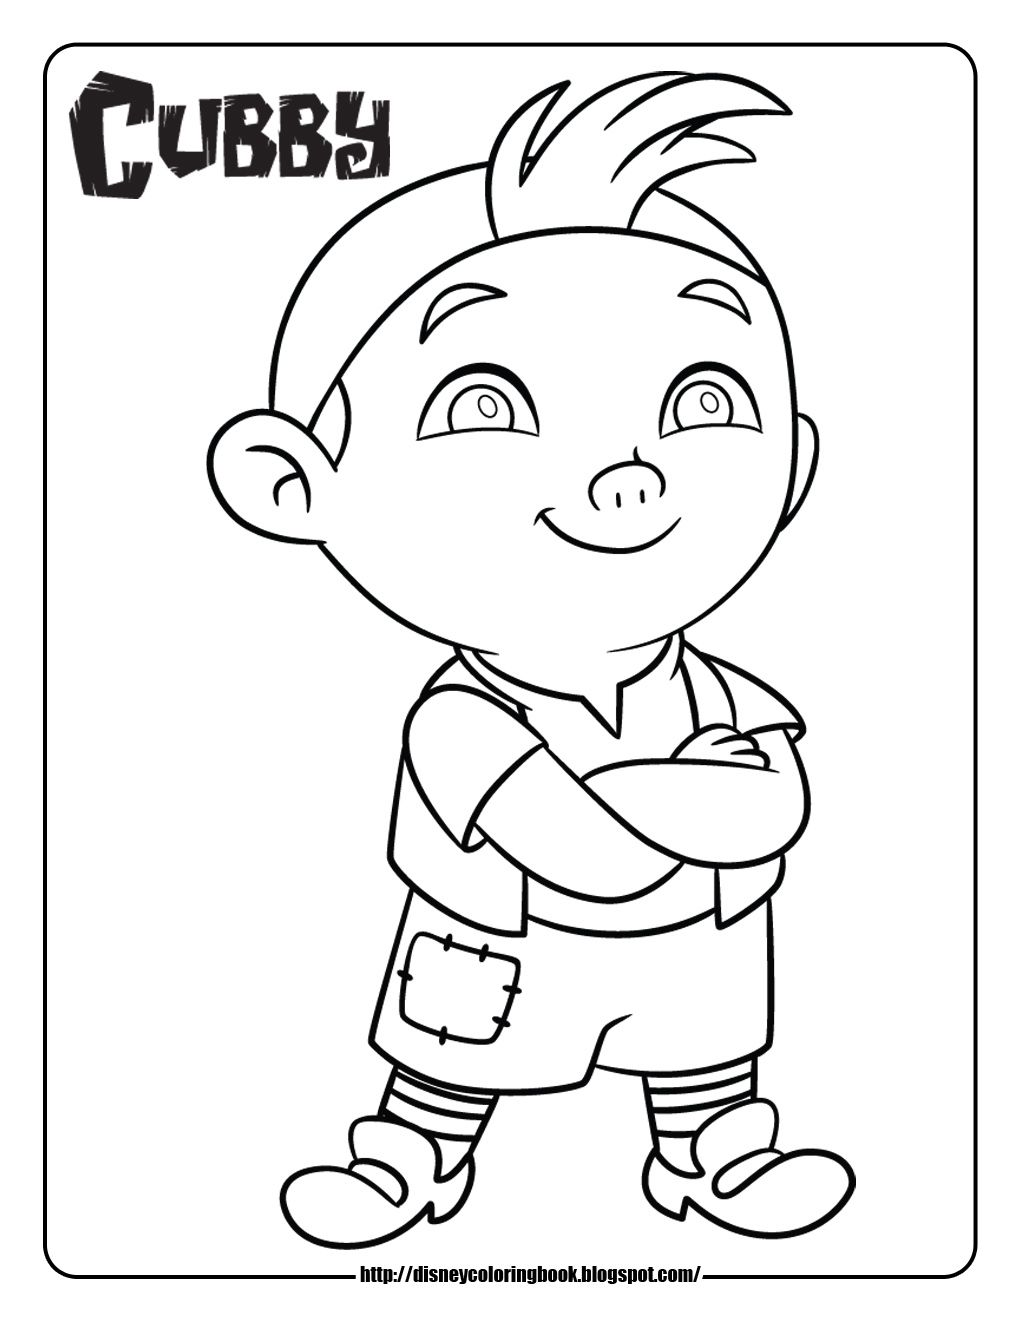 Disney Coloring Pages And Sheets For Kids Jake The Neverland Pirates 1 Free